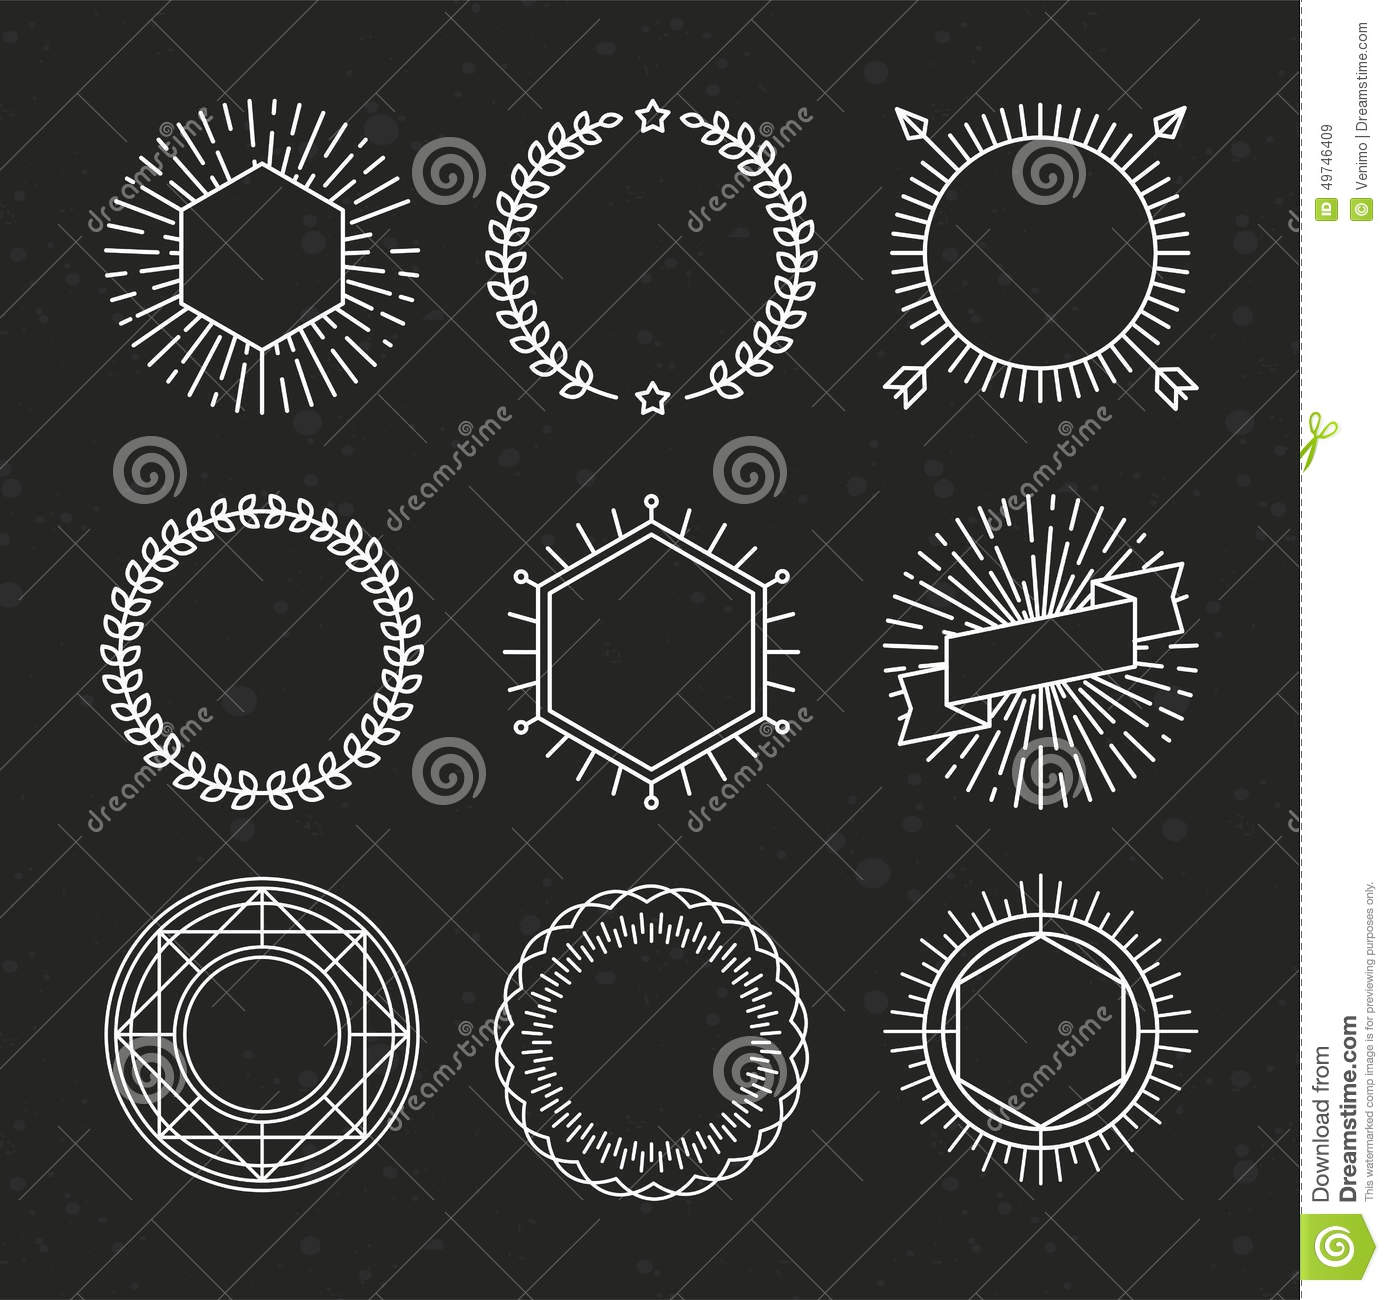 Vector Set Of Outline Emblems And Badges Stock Vector - Image ...